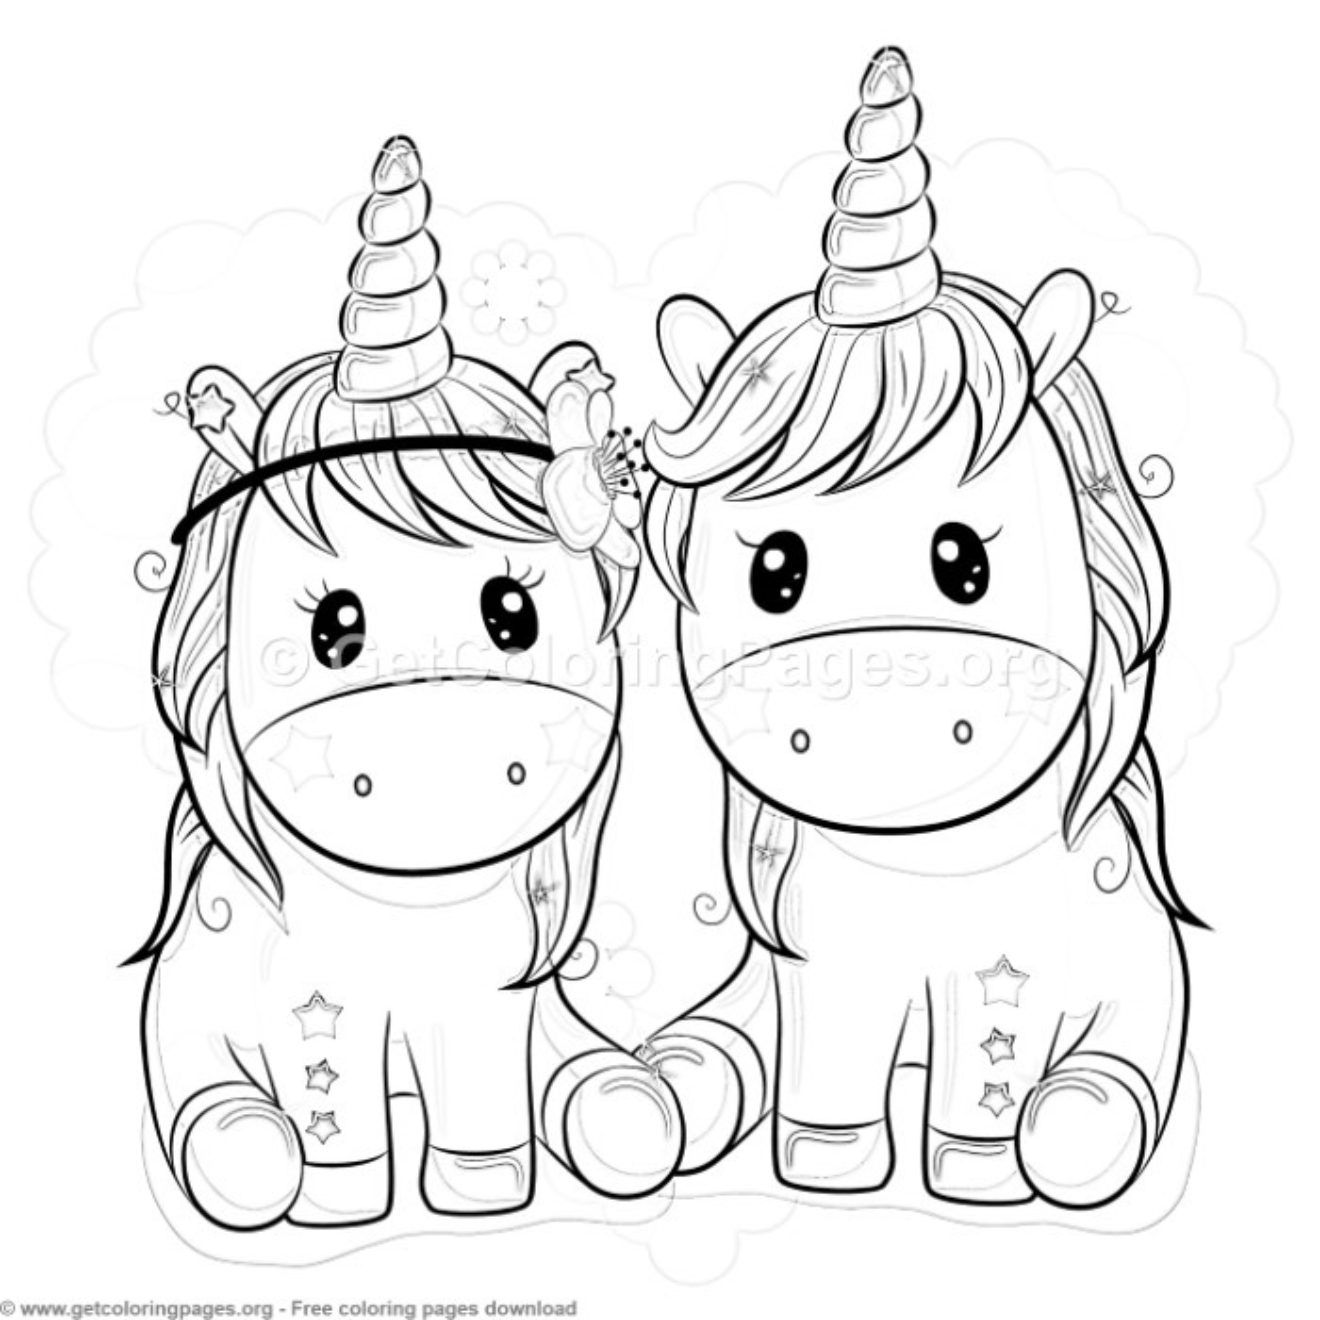 unicorn coloring pages for adults – GetColoringPages.org ...